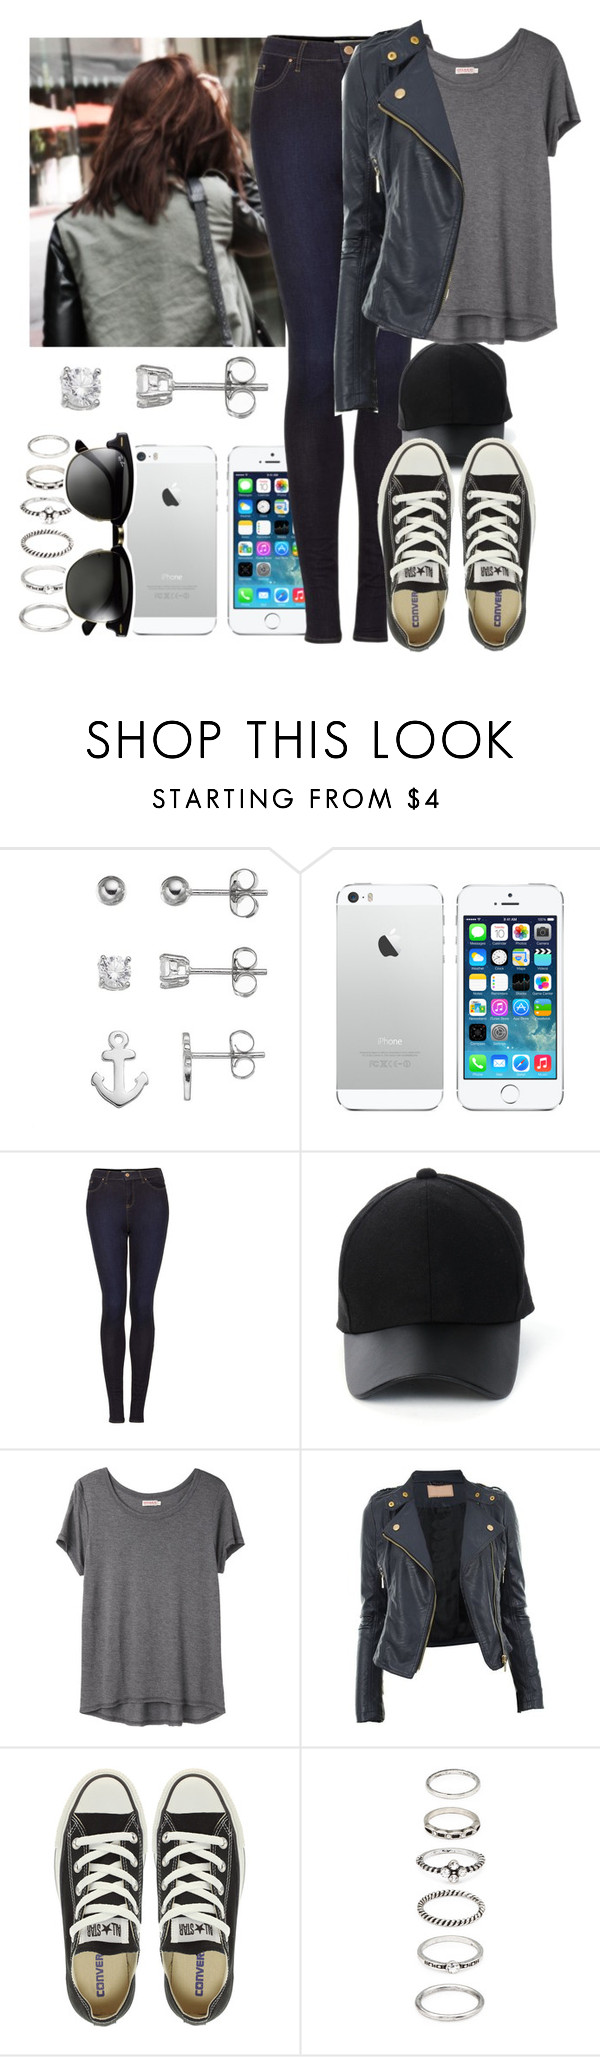 """""""Sem título #1216"""" by esther-rosa ❤ liked on Polyvore featuring Topshop, Amiee Lynn, Organic by John Patrick, Converse, Forever 21 and Ray-Ban"""